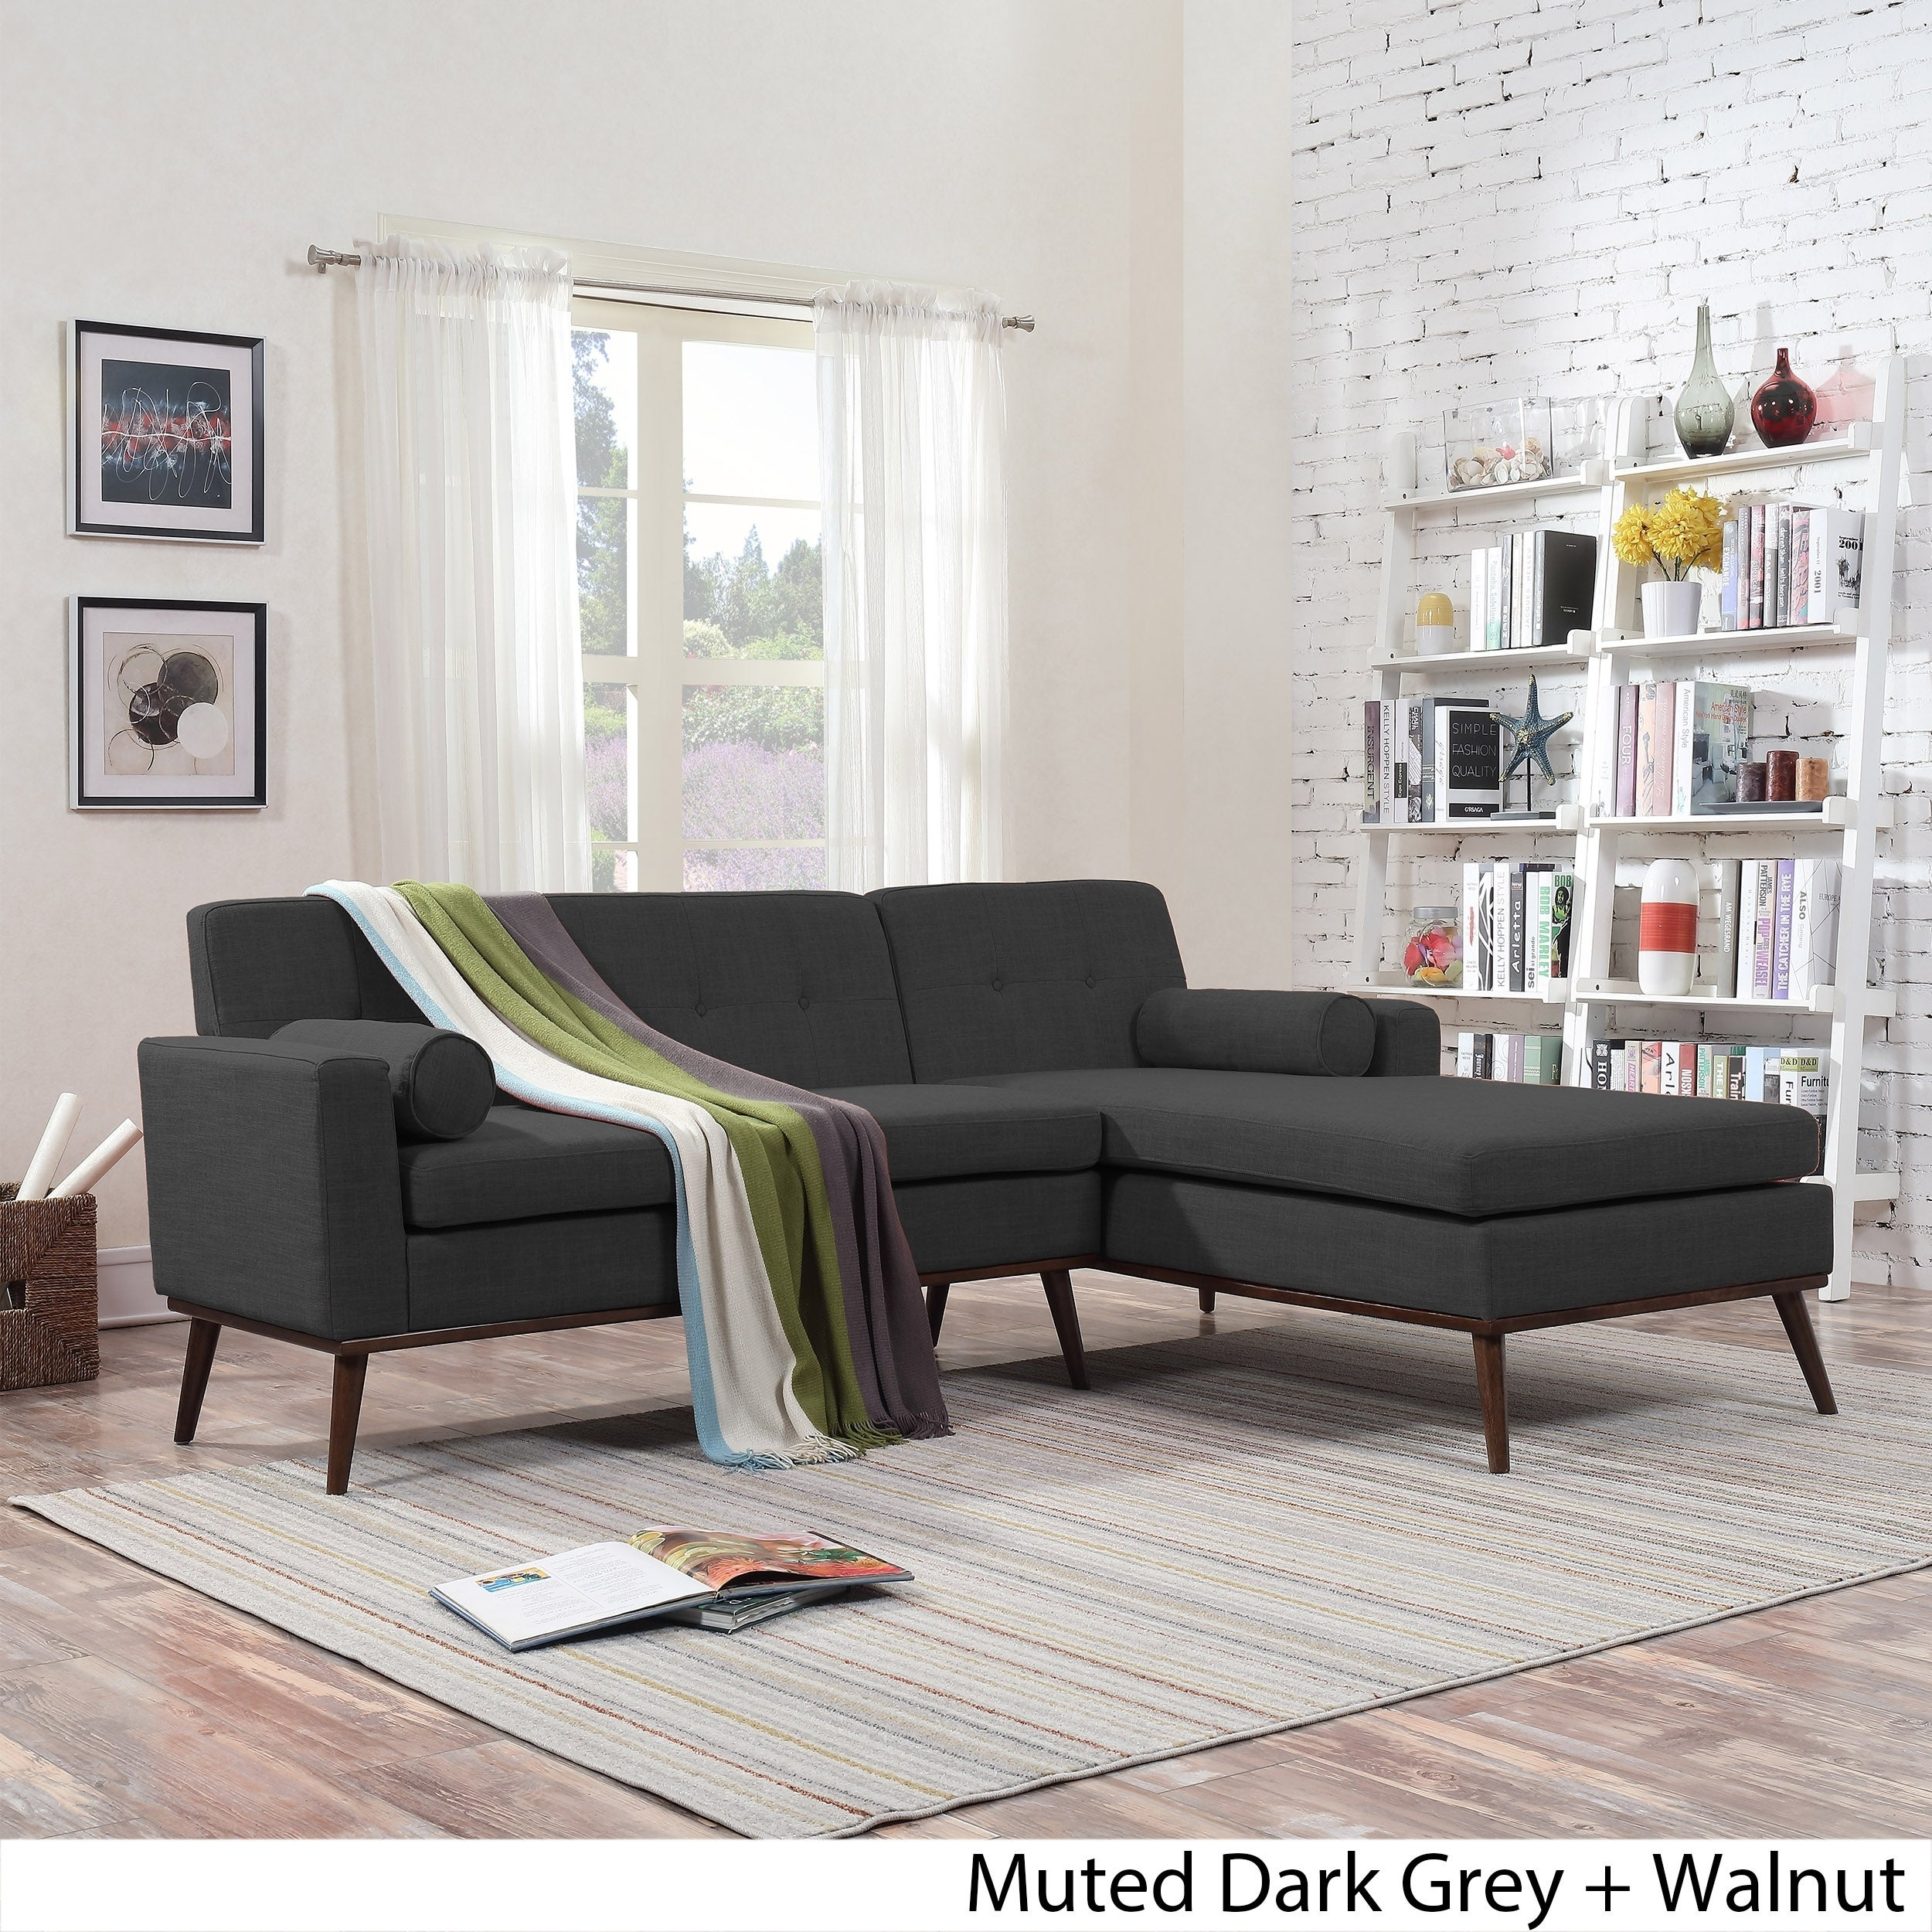 Details about Stormi Mid Century Modern 2-Piece Mut Sectional Sofa and